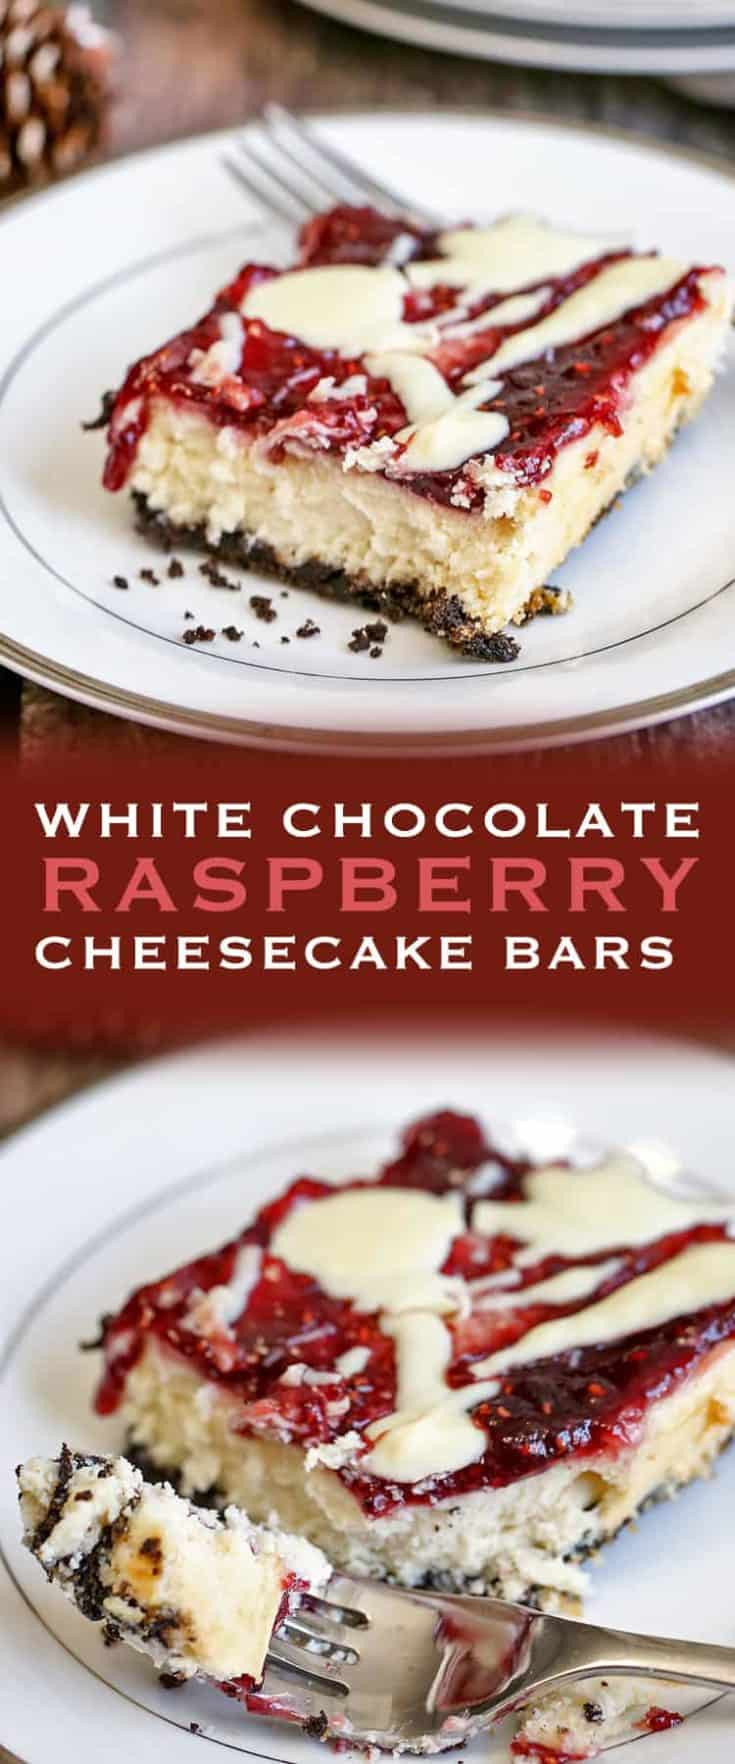 White Chocolate Raspberry Cheesecake Bars are sweet and tangy. The combination of an Oreo crust, white chocolate and raspberry jam is perfection #cheesecakebars #cheesecake #bars